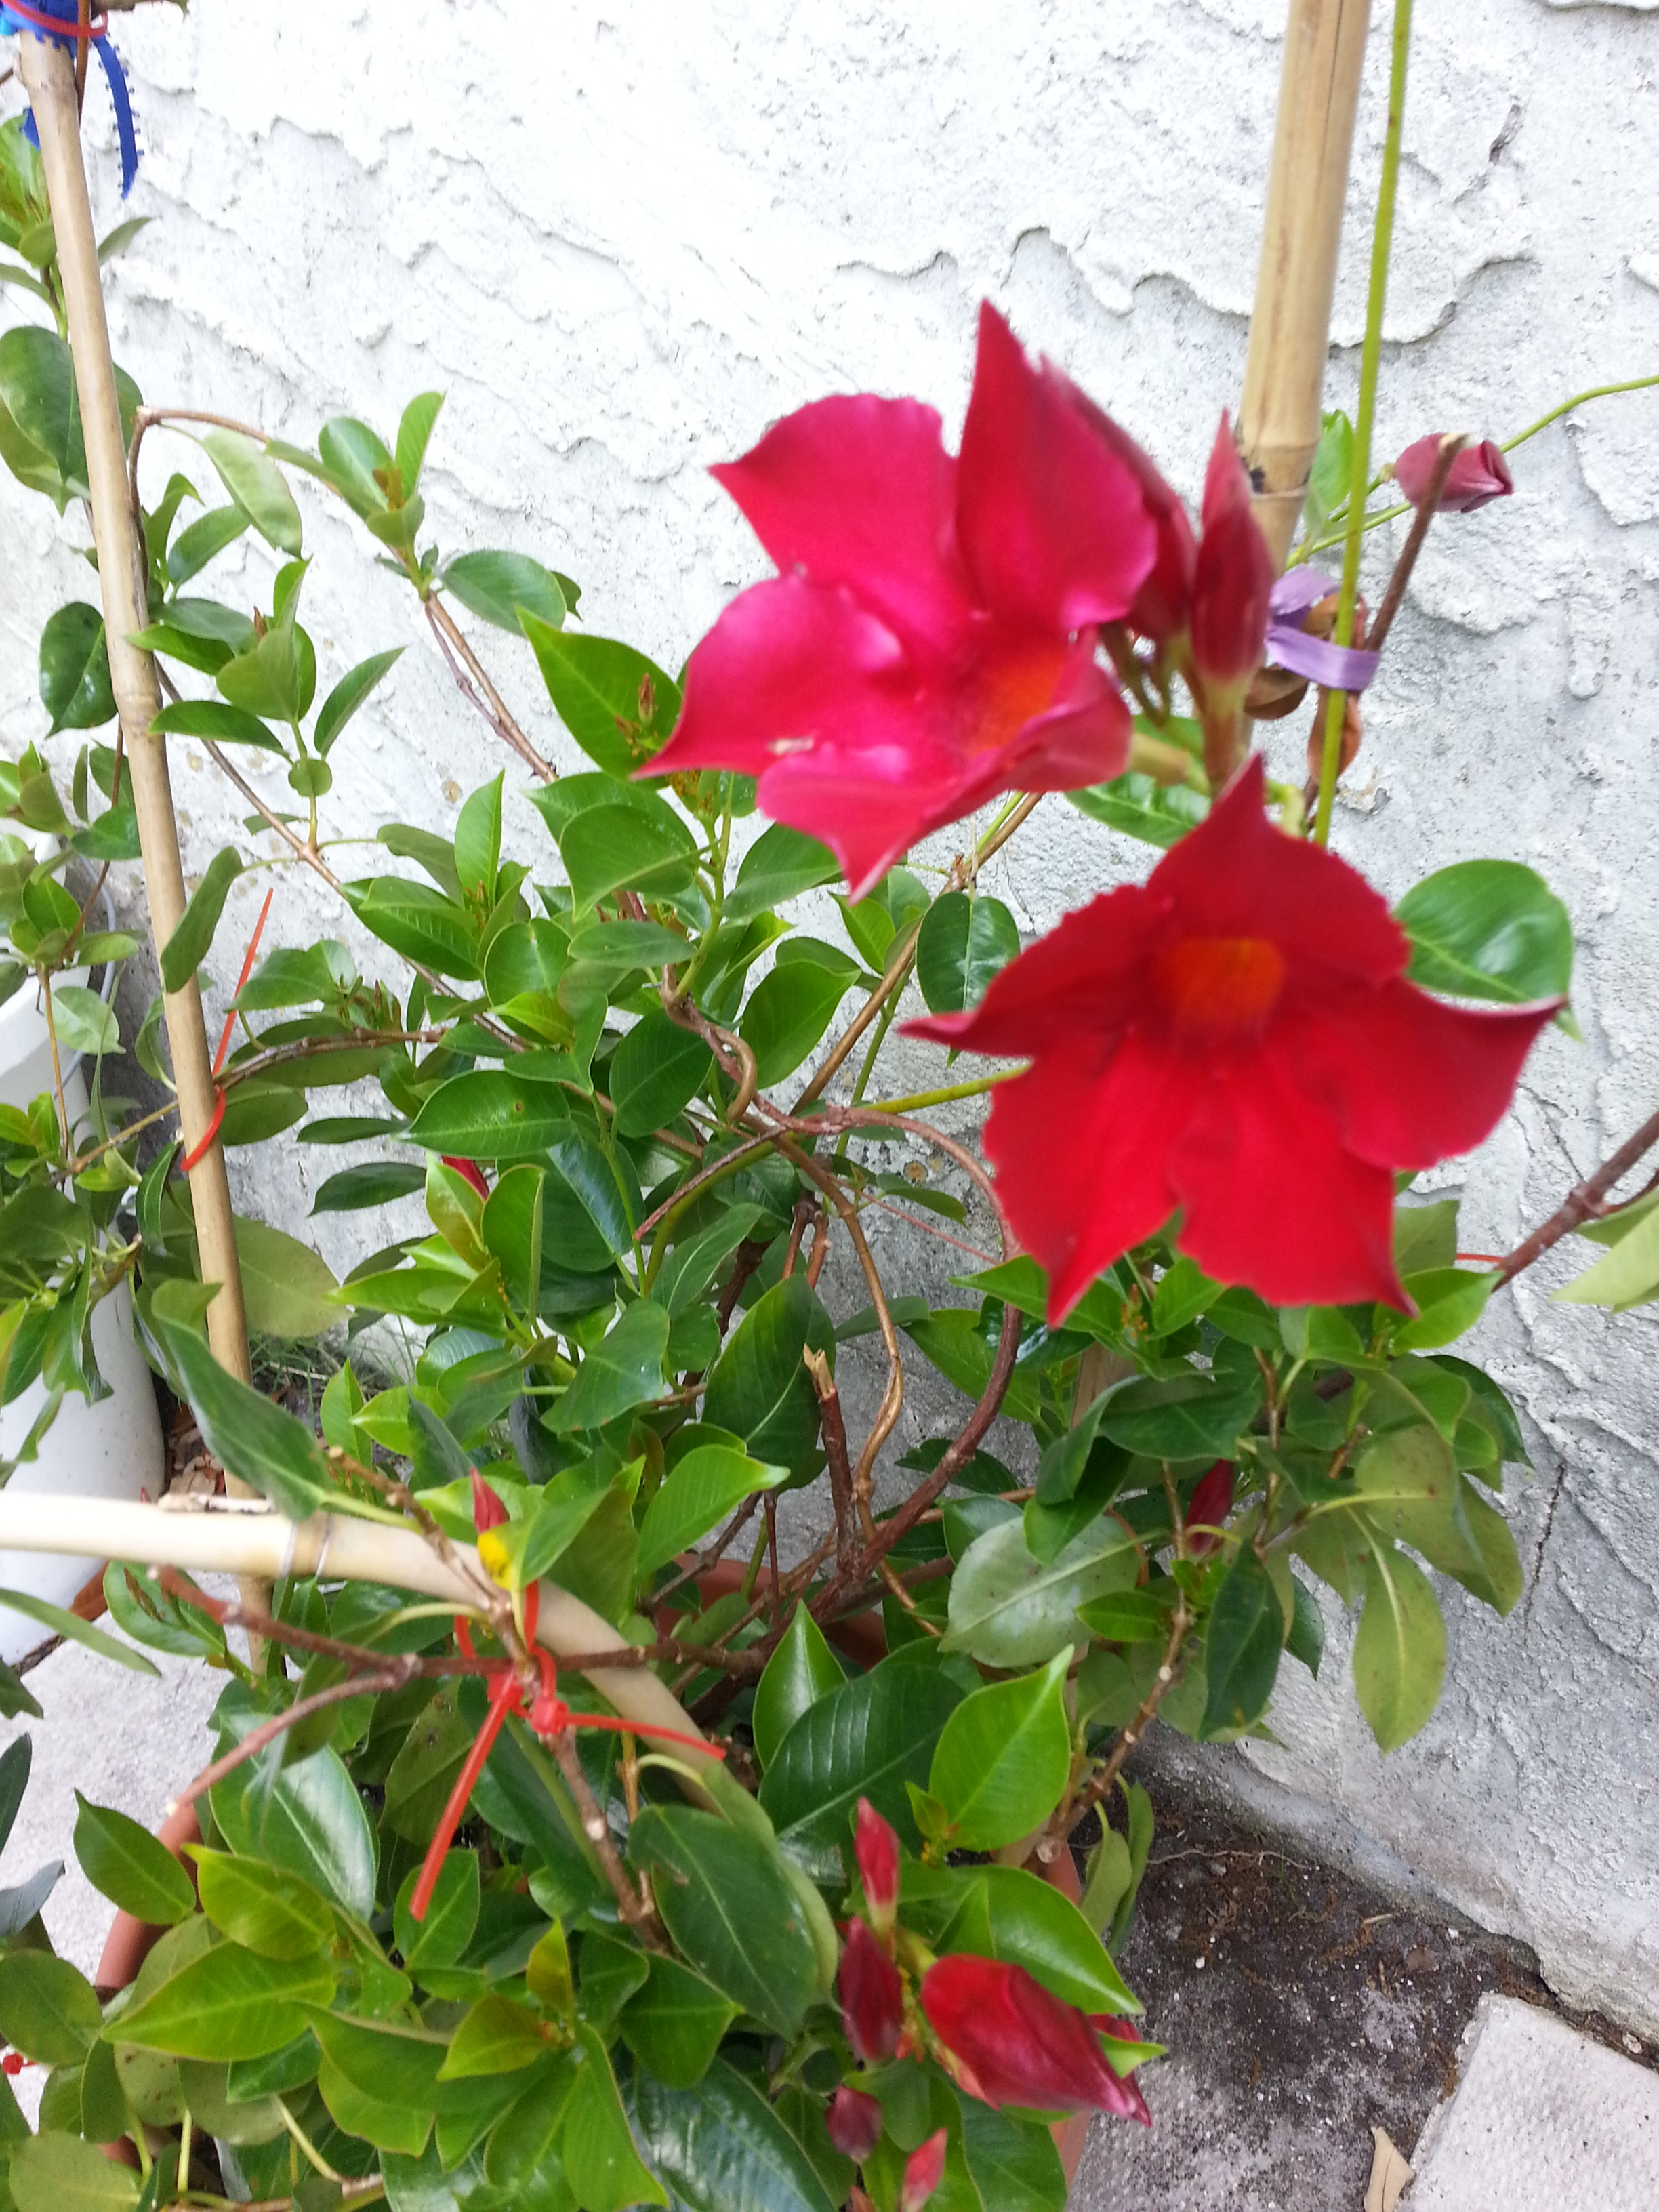 Growing Mandevilla: Battle Of Mandevilla And The Case Of The Missing Loquats